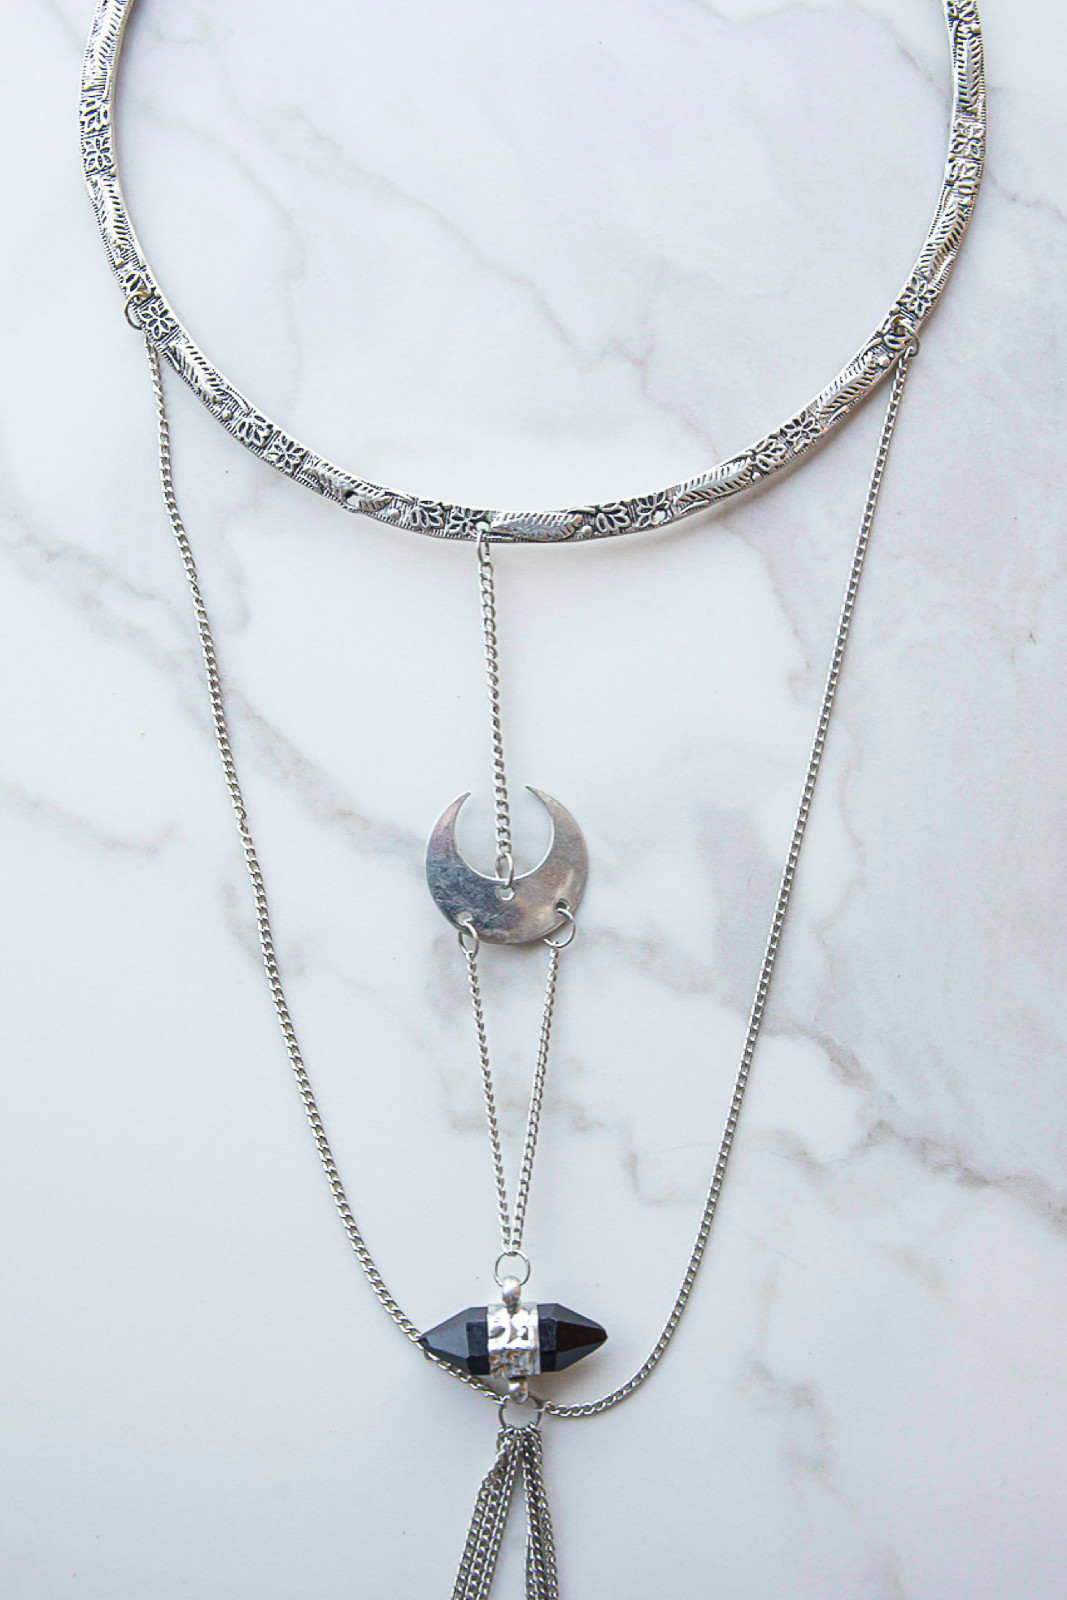 Antique Silver Choker Body Chain with Moon and Stone Charm